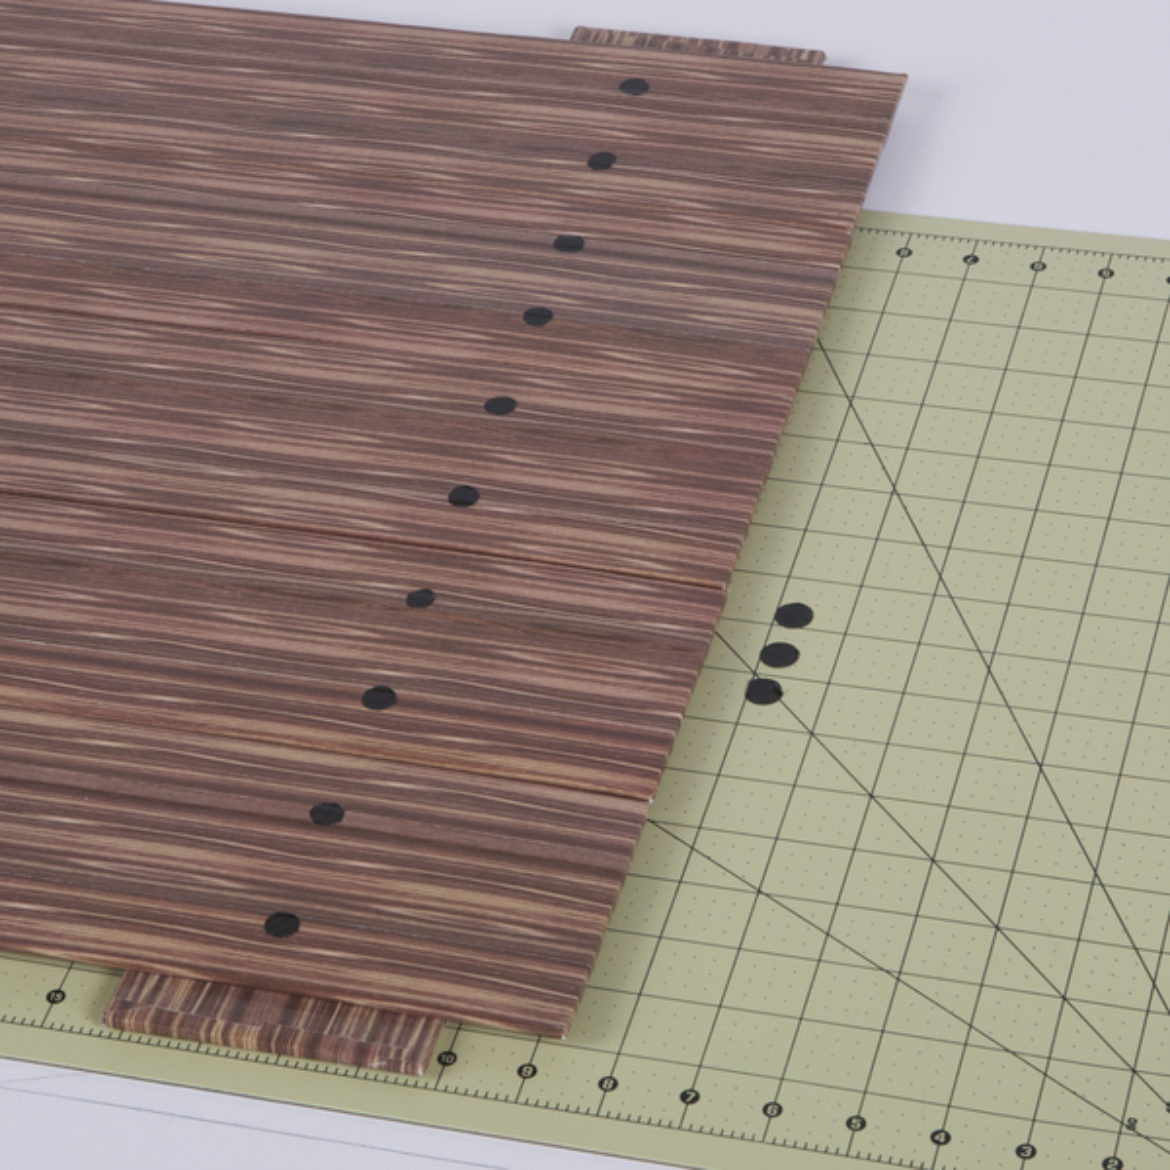 Small black Duck Tape circles plced on the front of the boards to look like nails in the wood